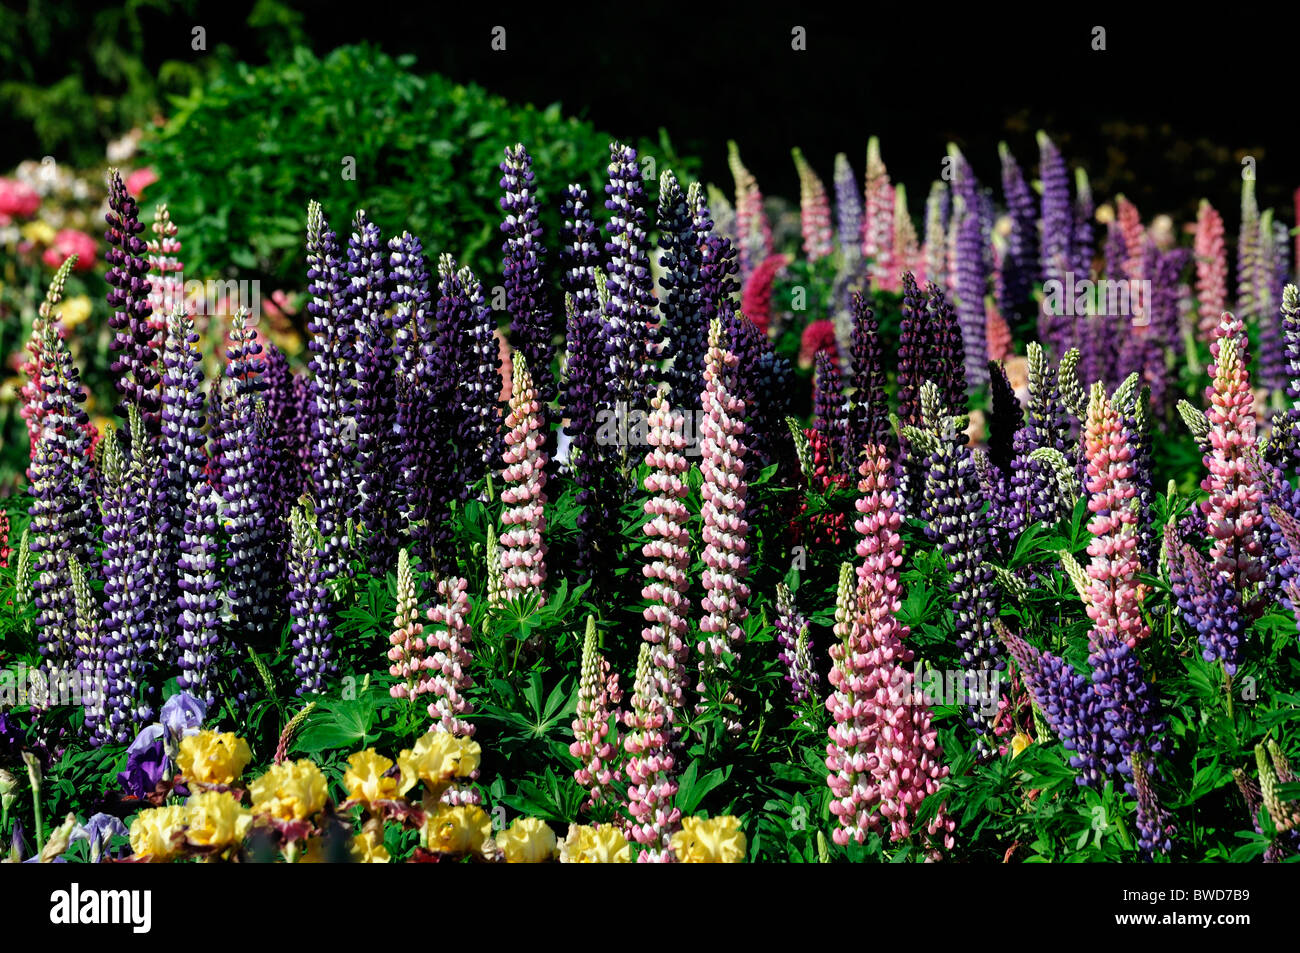 Mixed herbaceous perennial flower bed border garden multi multiple mixed herbaceous perennial flower bed border garden multi multiple color colors summer colorful colourful lupin bearded iris mightylinksfo